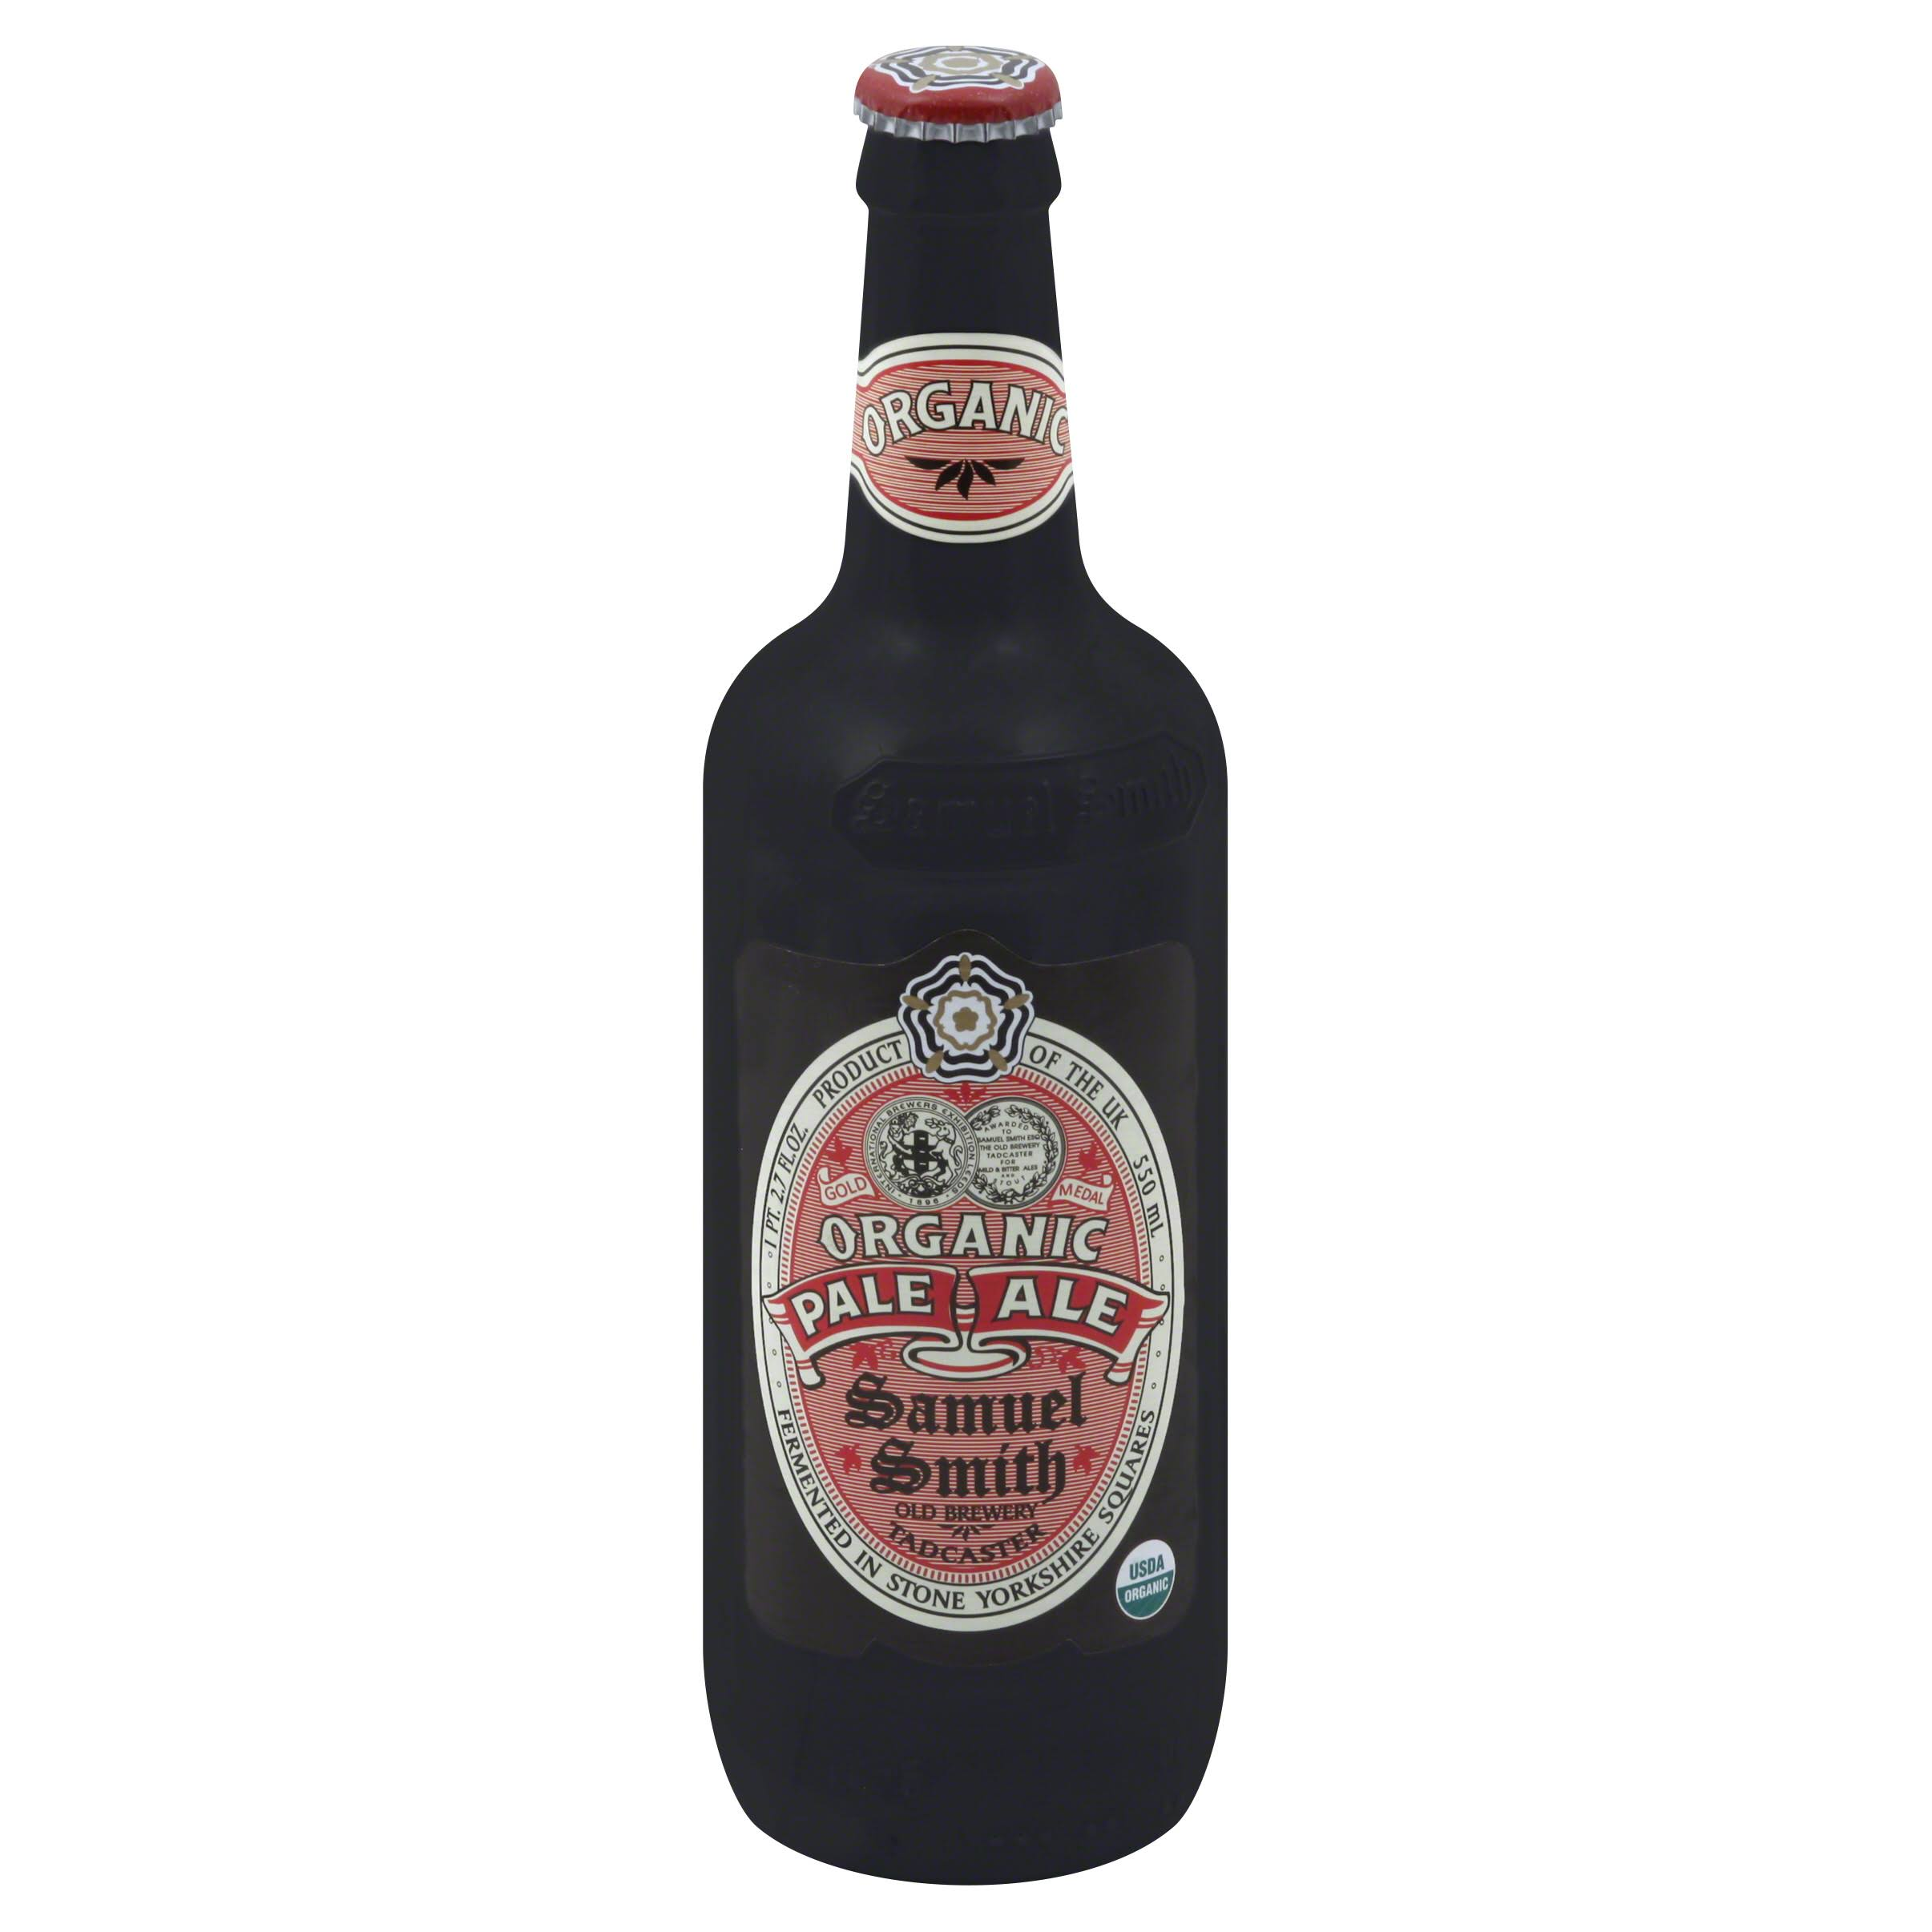 Samuel Smith Ale, Organic, Pale - 18.7 fl oz